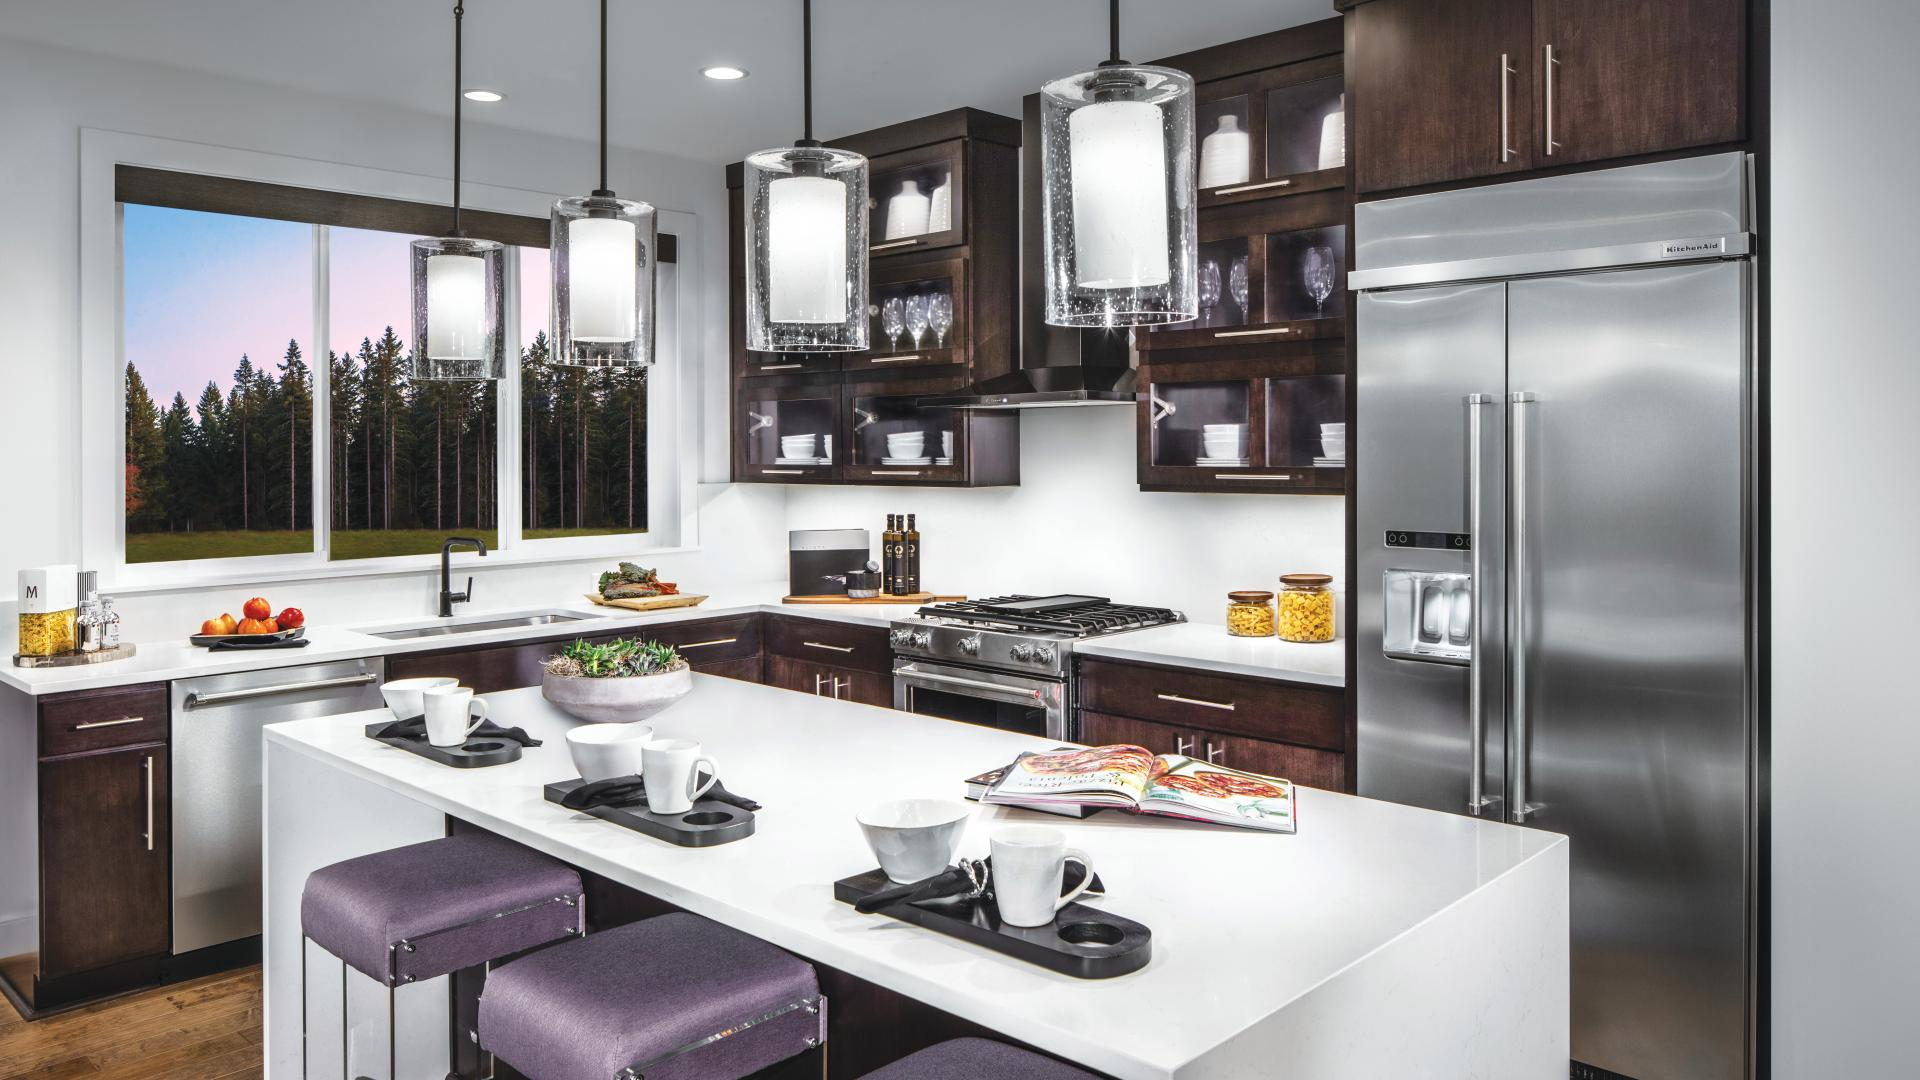 Well-designed kitchen with center island and plenty of counter space